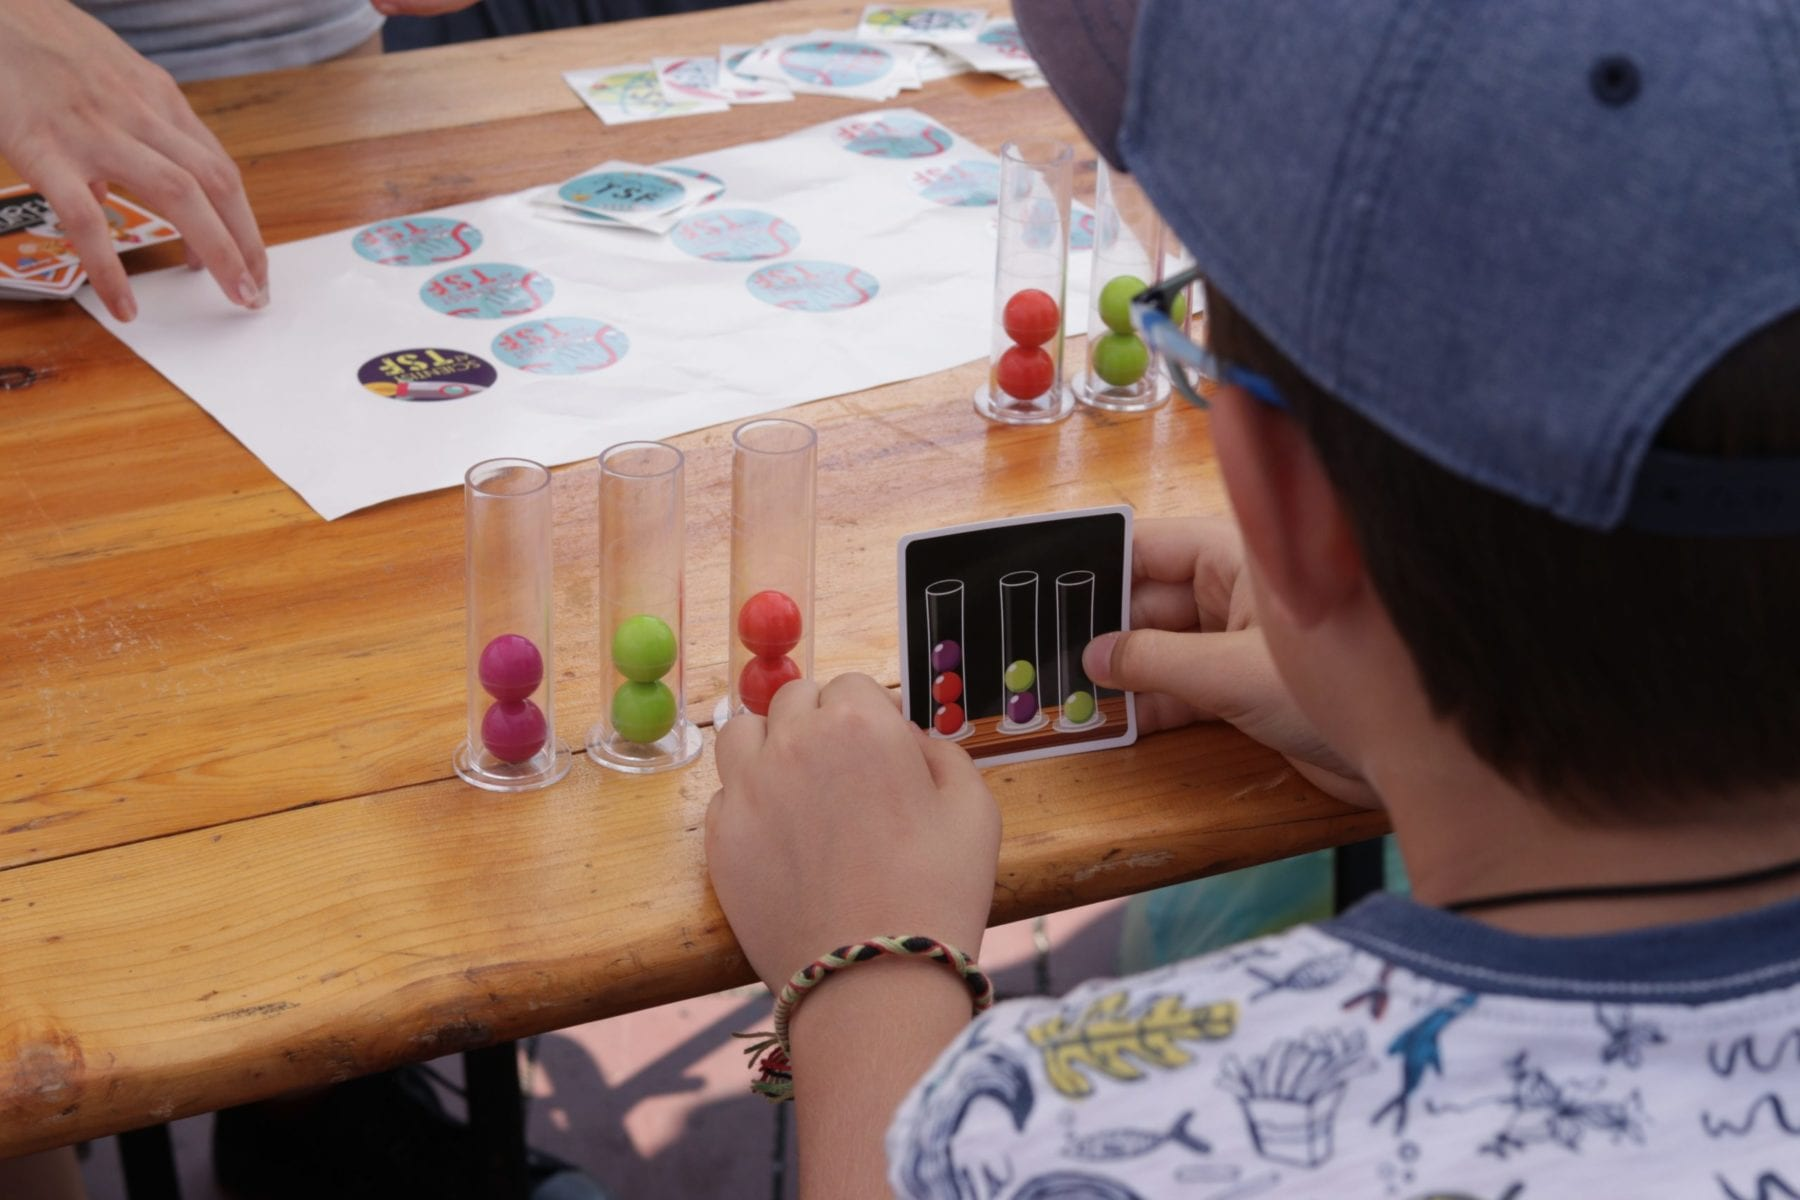 KiwiCo offers enriching science, art subscription box, free resources for at-home learning